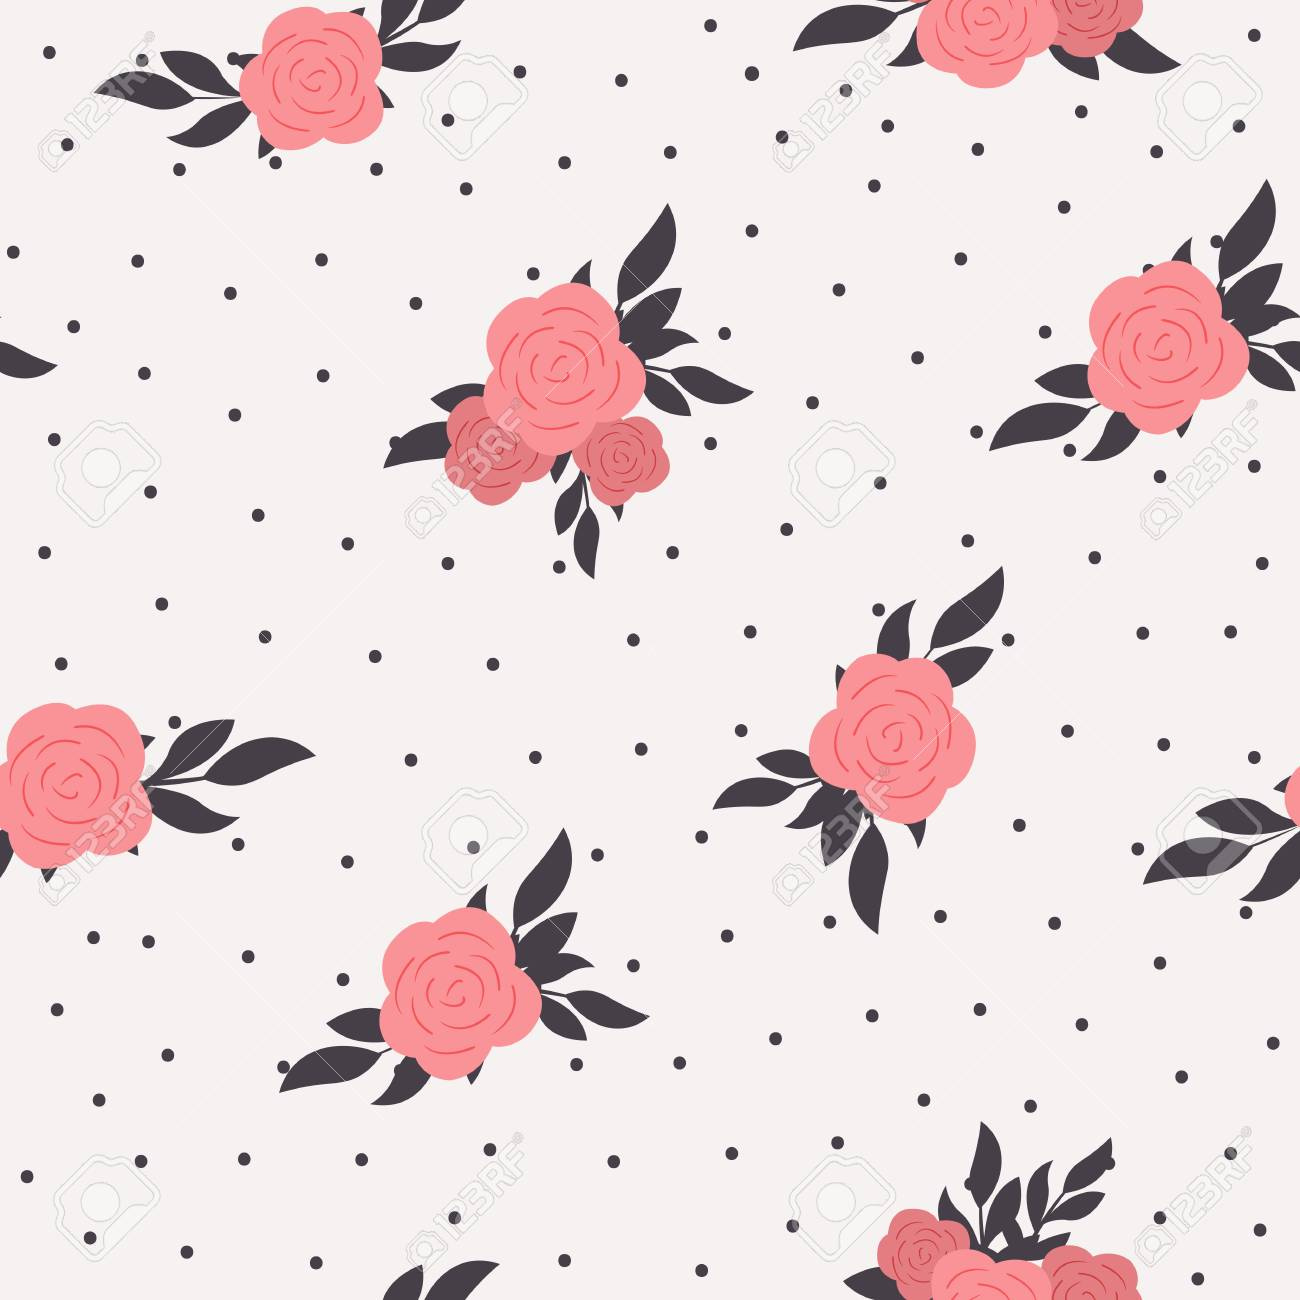 Seamless floral polka dot background. Shabby chic style pattern with pink roses - 121465325